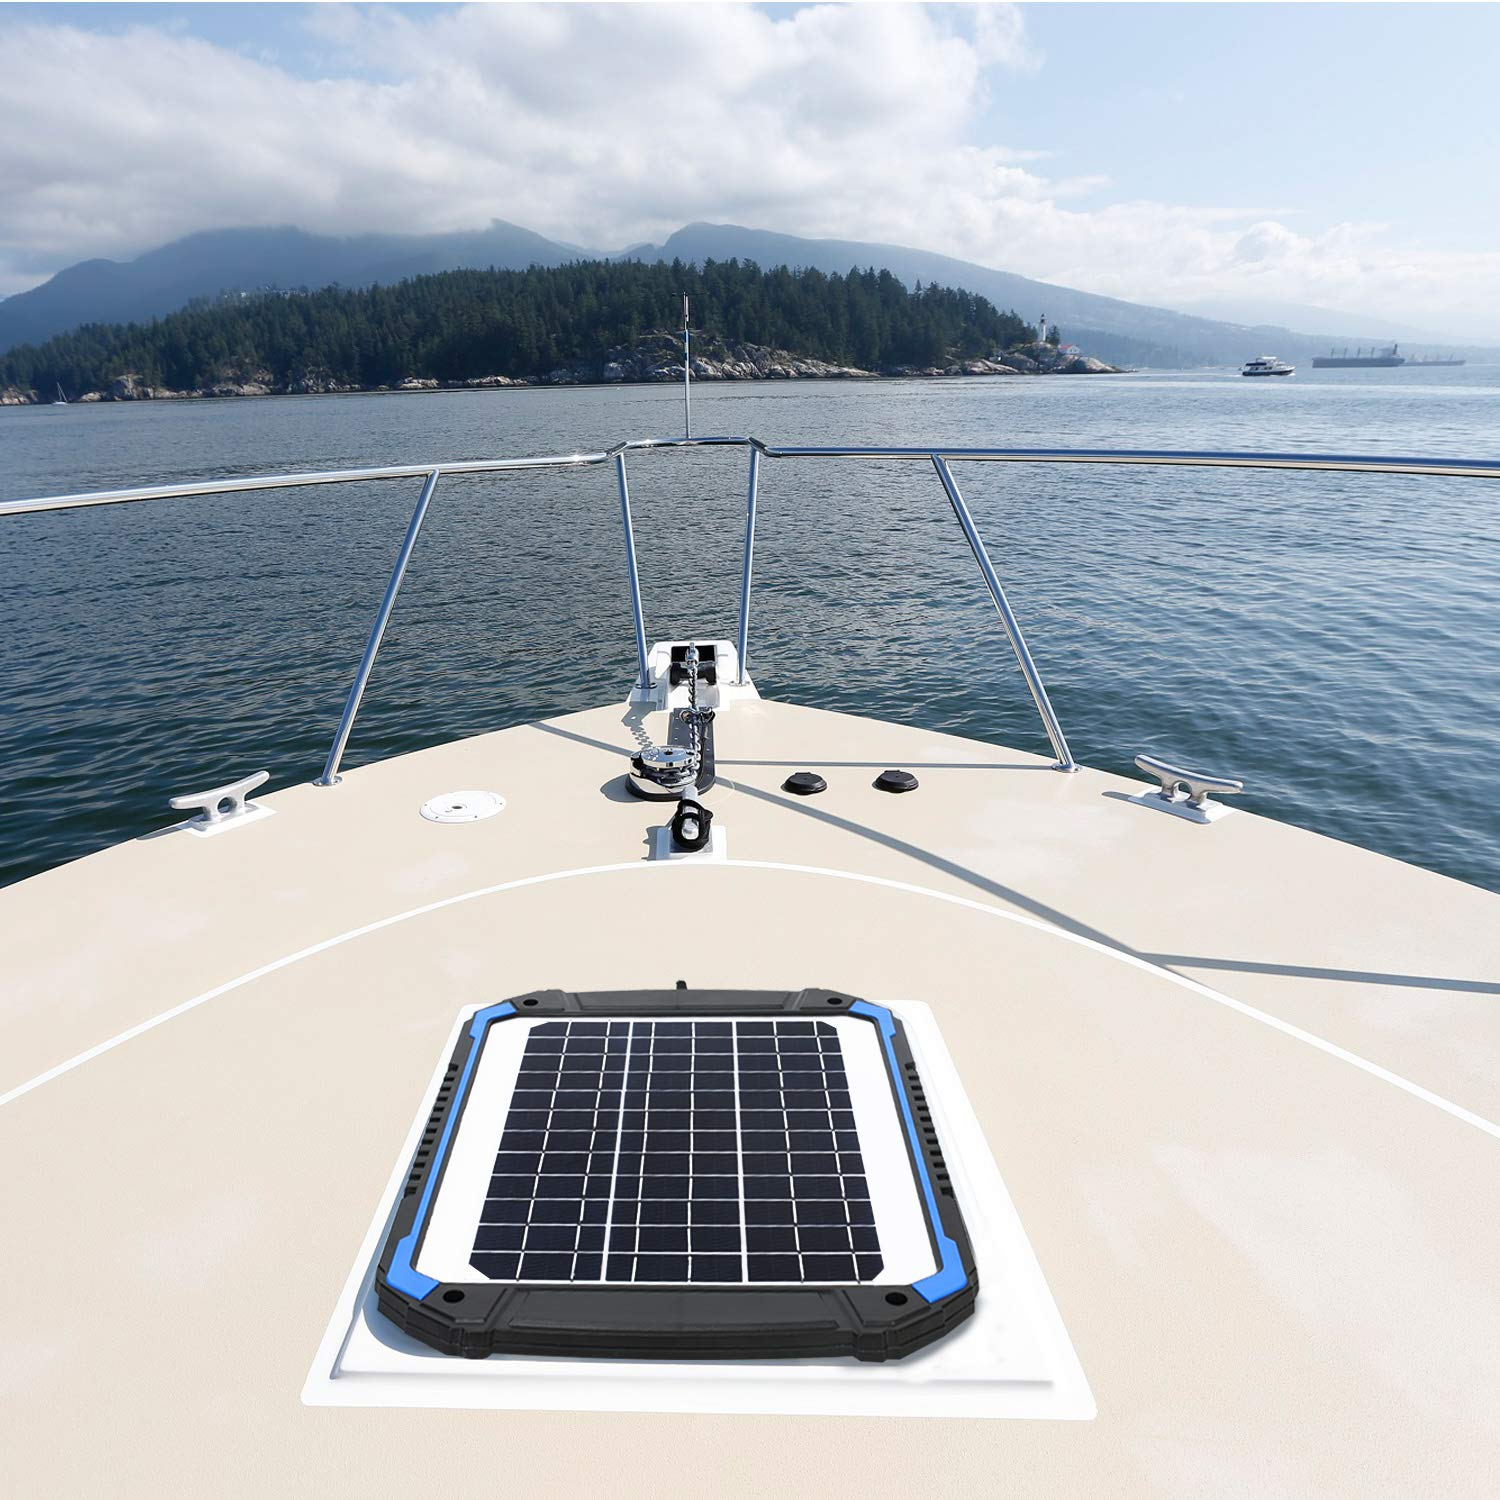 SUNER POWER 12V Solar Car Battery Charger & Maintainer - Portable 14W Solar Panel Trickle Charging Kit for Automotive, Motorcycle, Boat, Marine, RV, Trailer, Powersports, Snowmobile, etc. by SUNER POWER (Image #7)